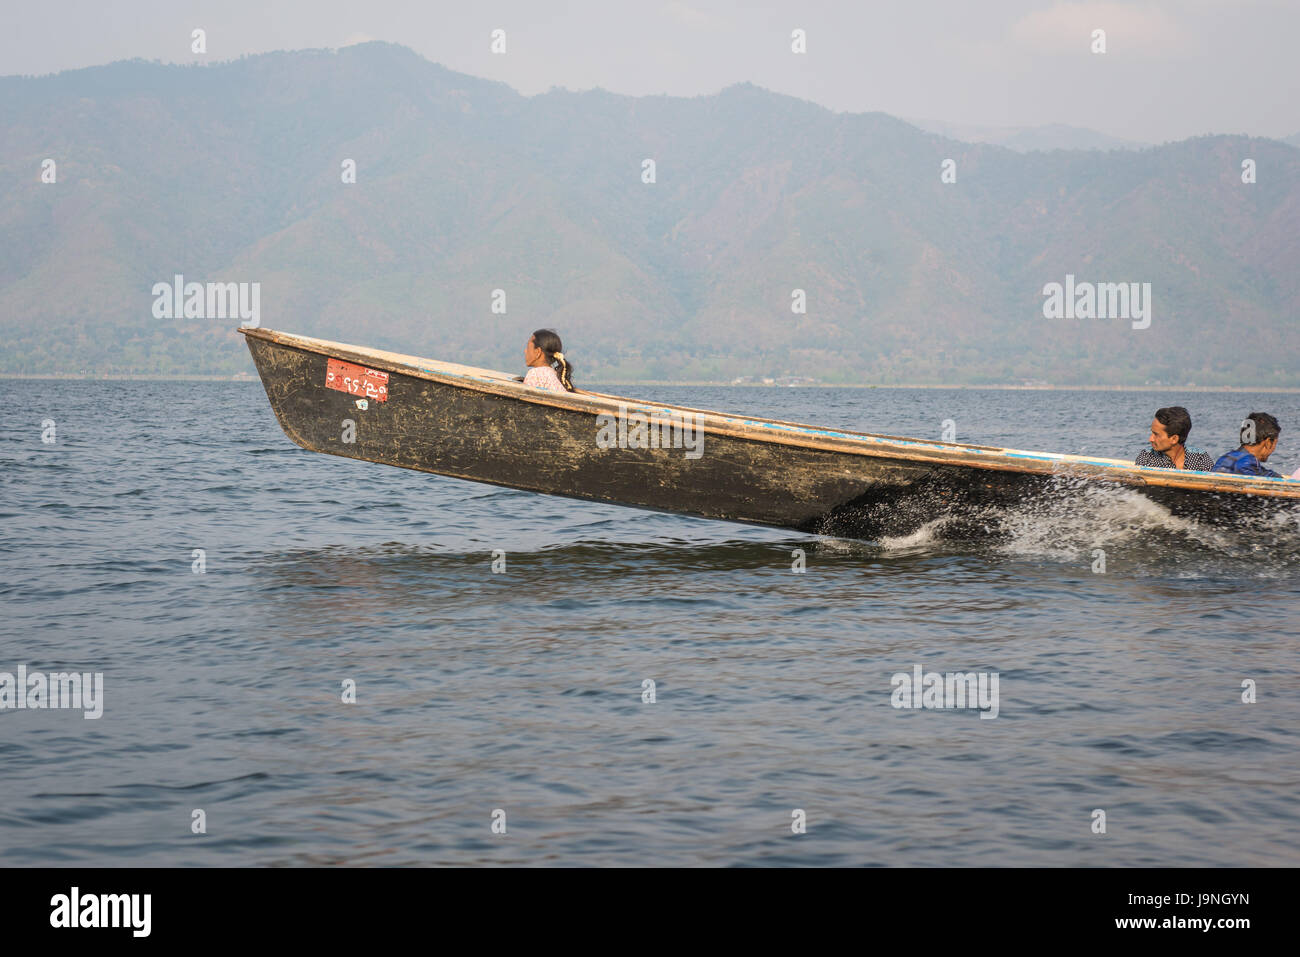 Travelling in a motorboat on Inle Lake, Myanmar. - Stock Image